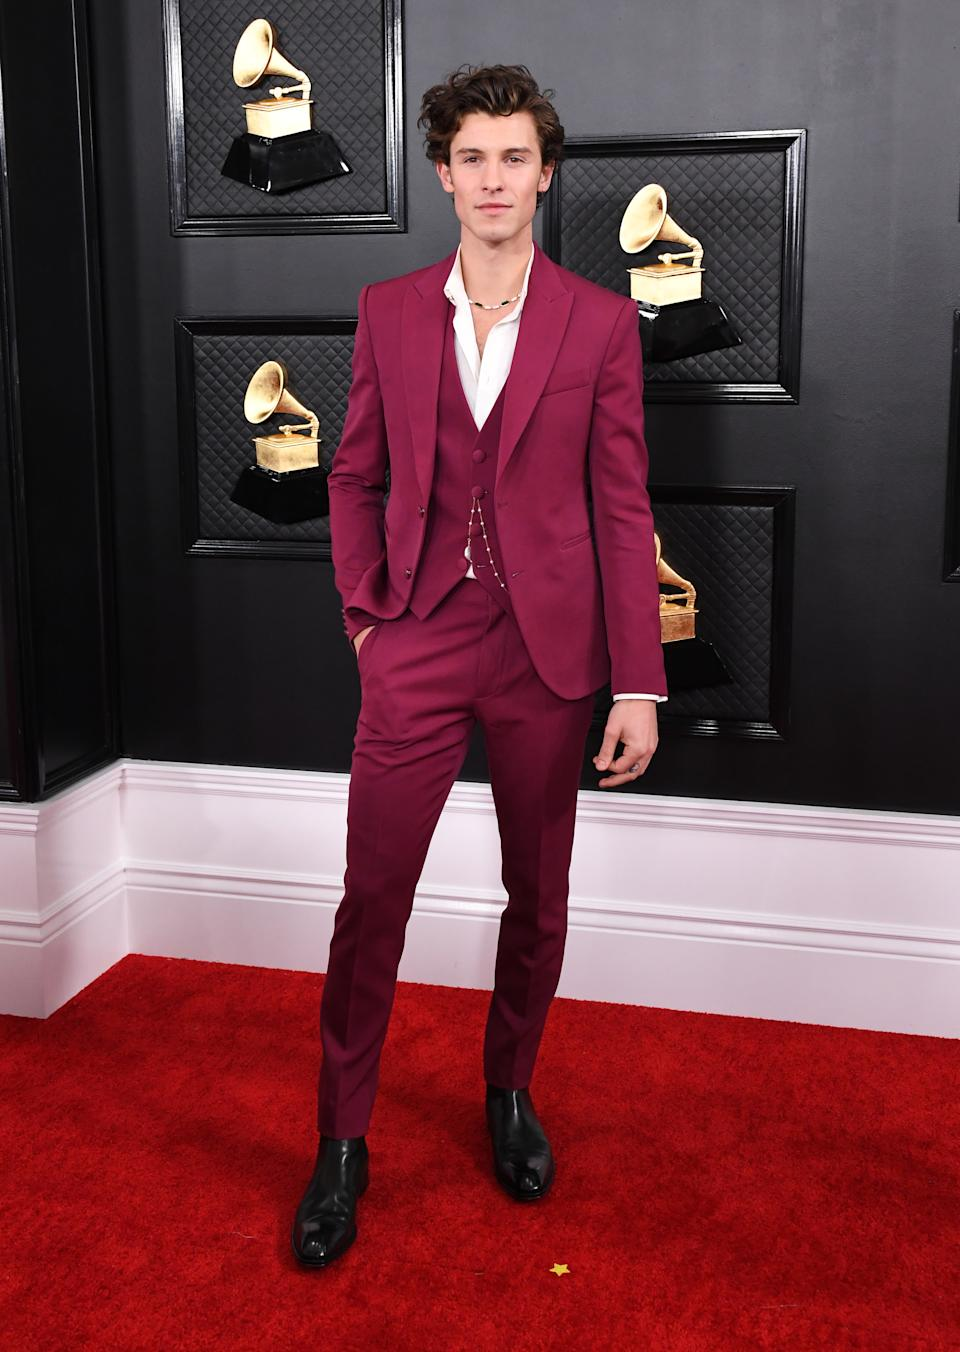 """The Canadian pop star hit the red carpet in bold magenta suit by Louis Vuitton. The 21-year-old earned a nomination for Best Pop Duo/Group Performance for his song """"Señorita"""" with girlfriend Camila Cabello."""